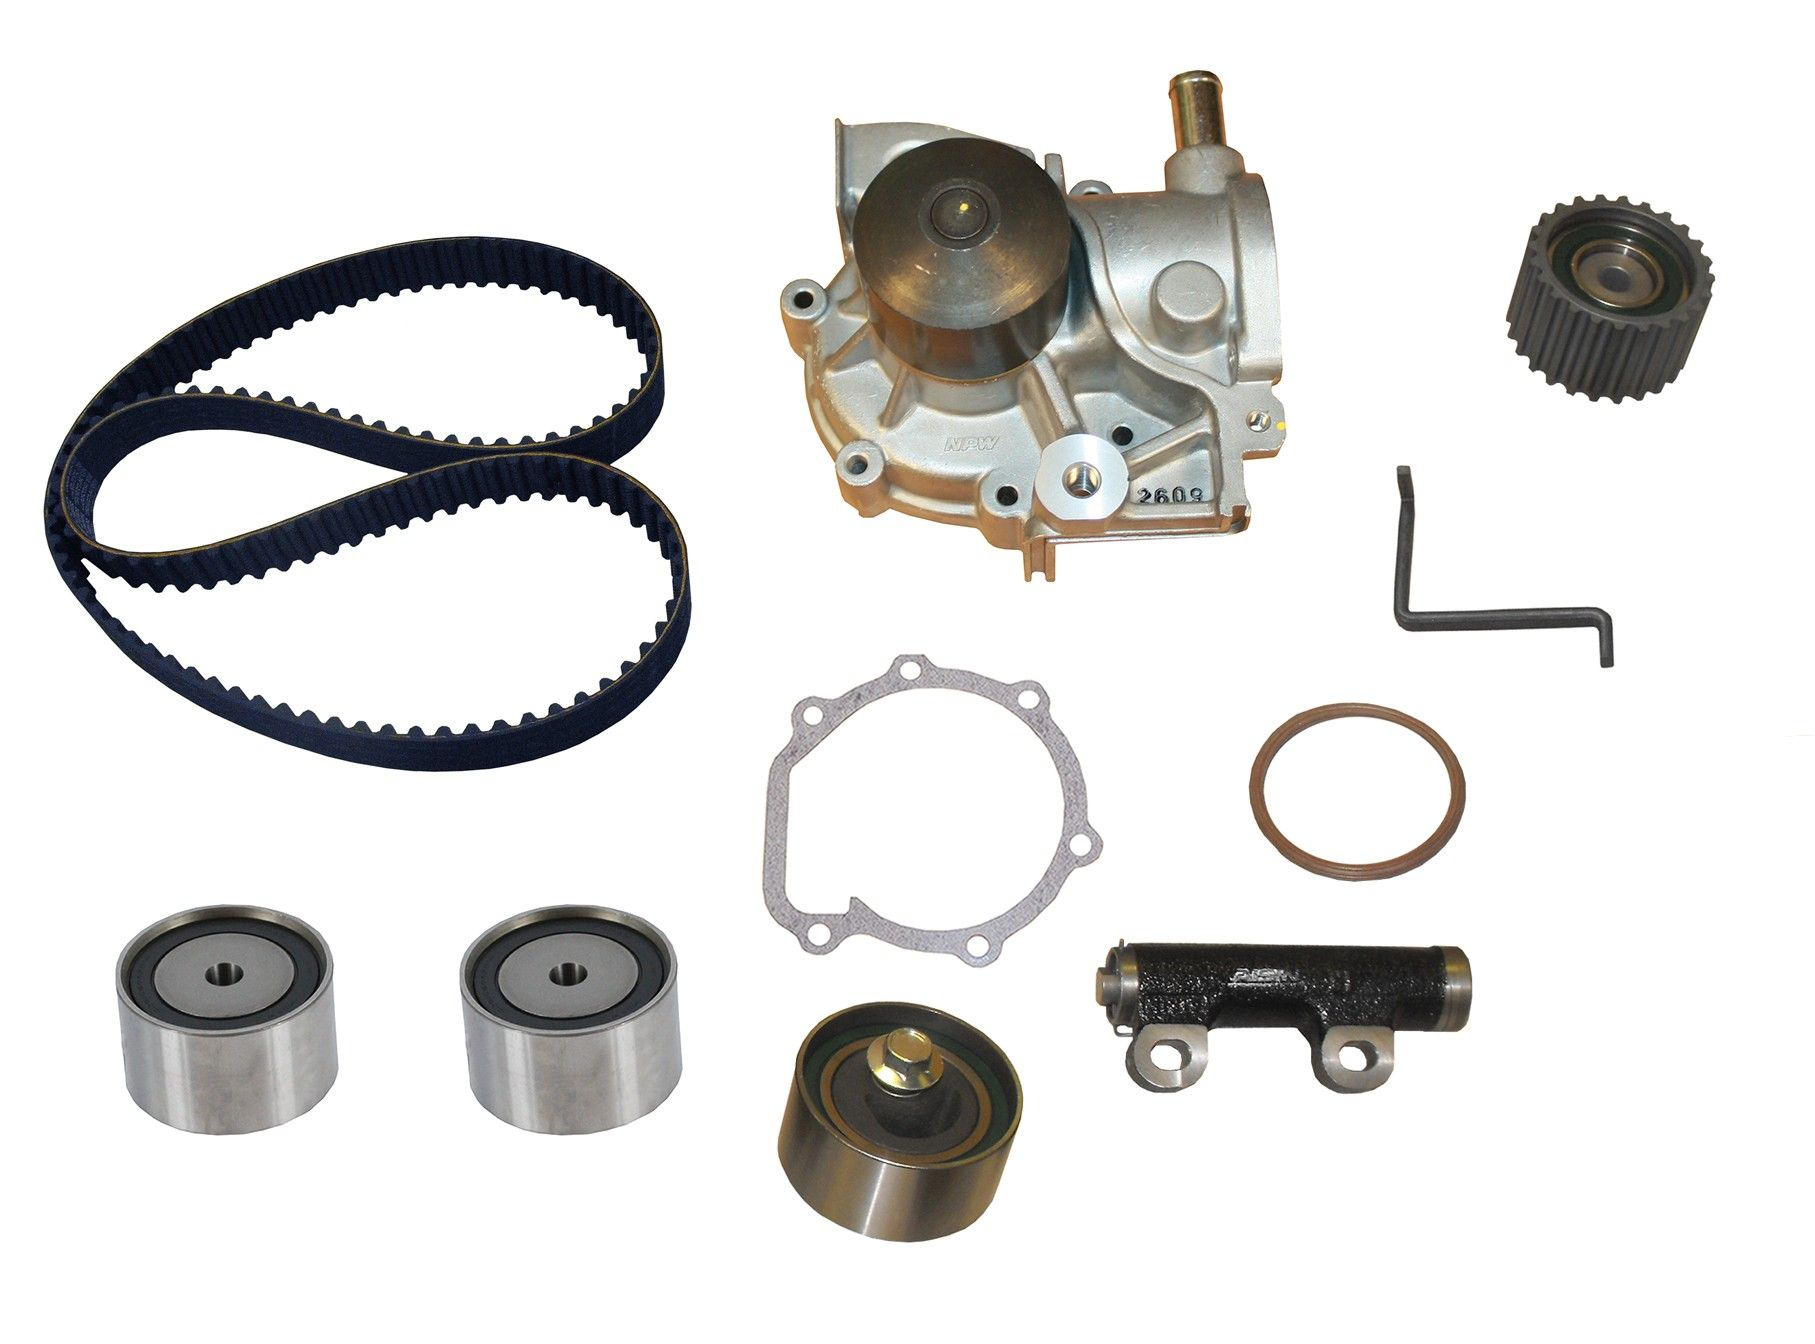 Subaru Legacy Engine Timing Belt Kit With Water Pump Replacement B4 Diagram 1993 4 Cyl 22l Crp Tb172lk1 Pro Series Contitech Includes Hyd Tensioner